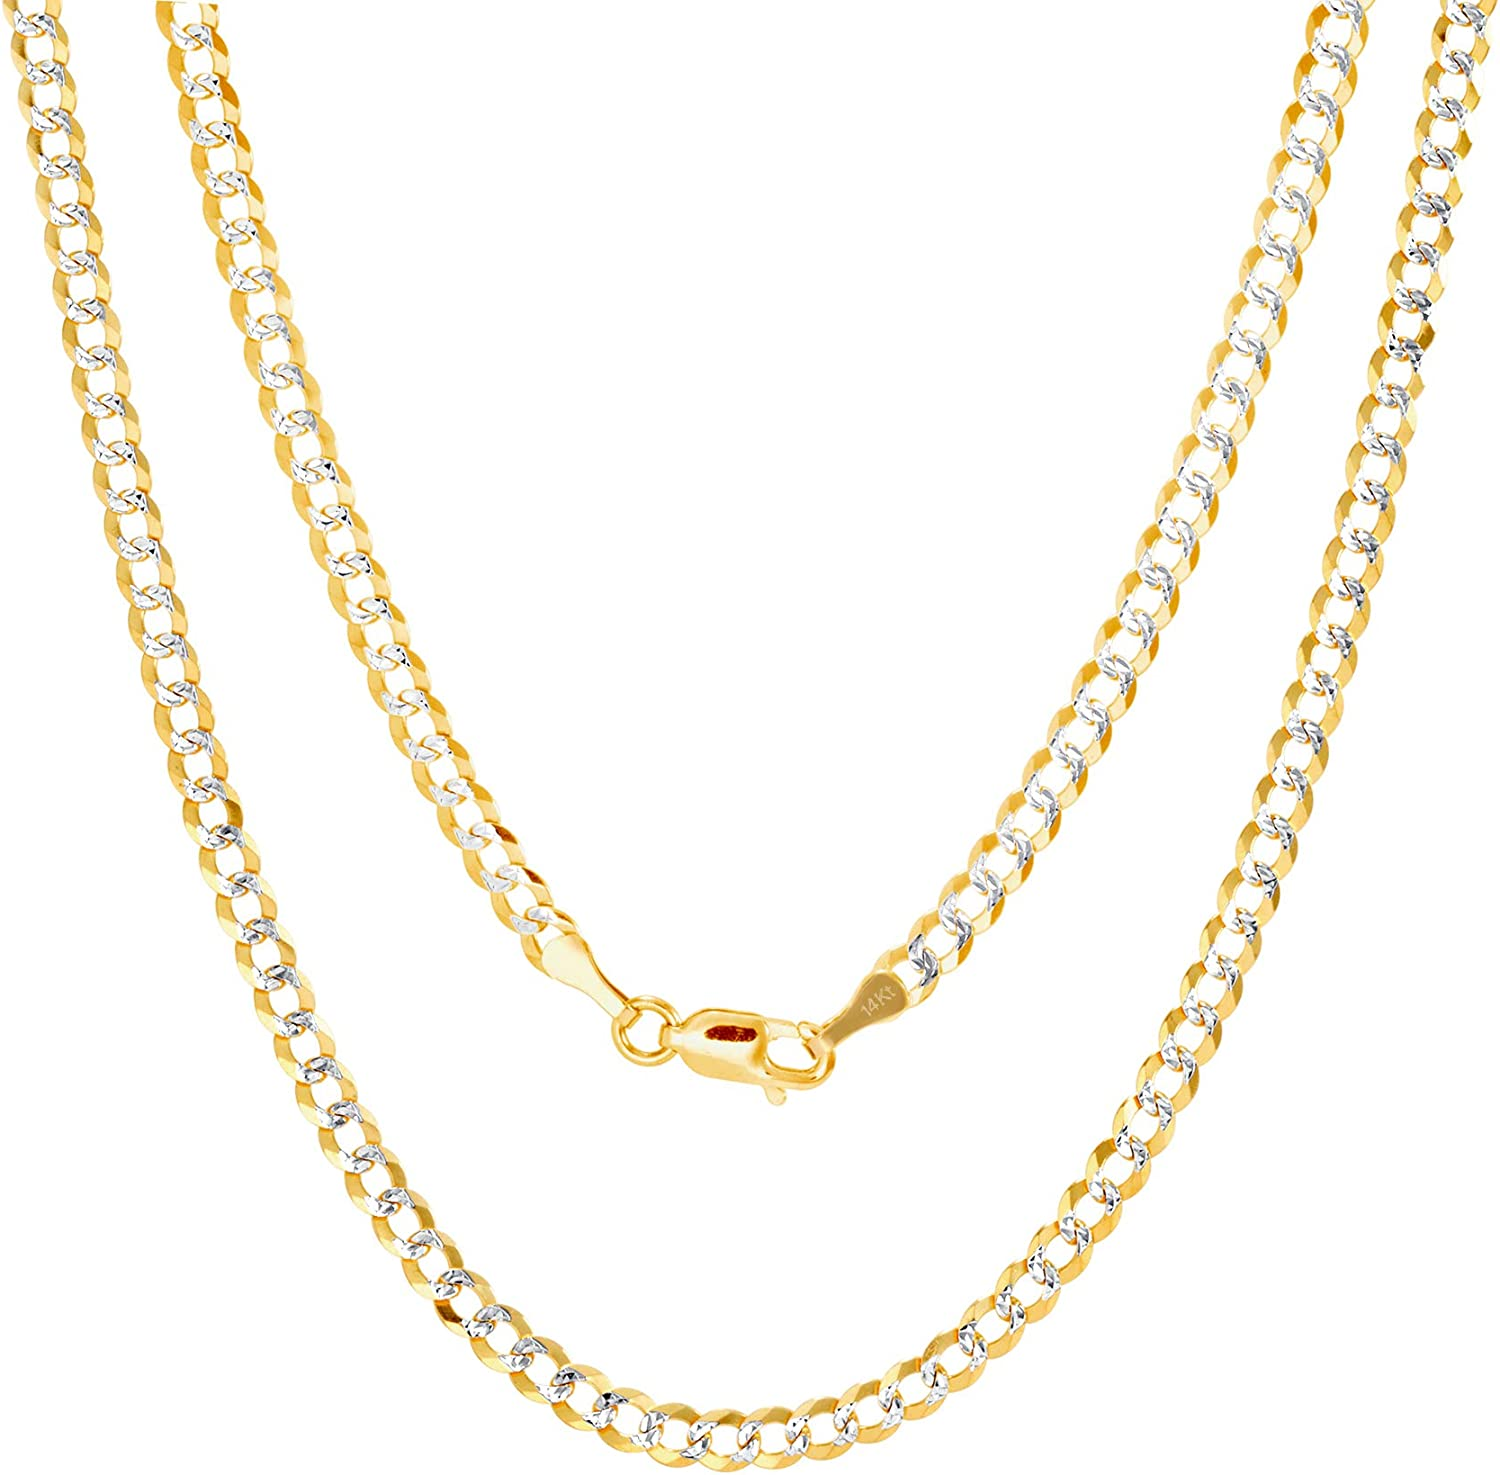 Nuragold 14k Yellow Gold Solid 4mm Cuban Chain Curb Link Diamond Cut Pave Two Tone Pendant Necklace, Mens Womens Lobster Lock 16